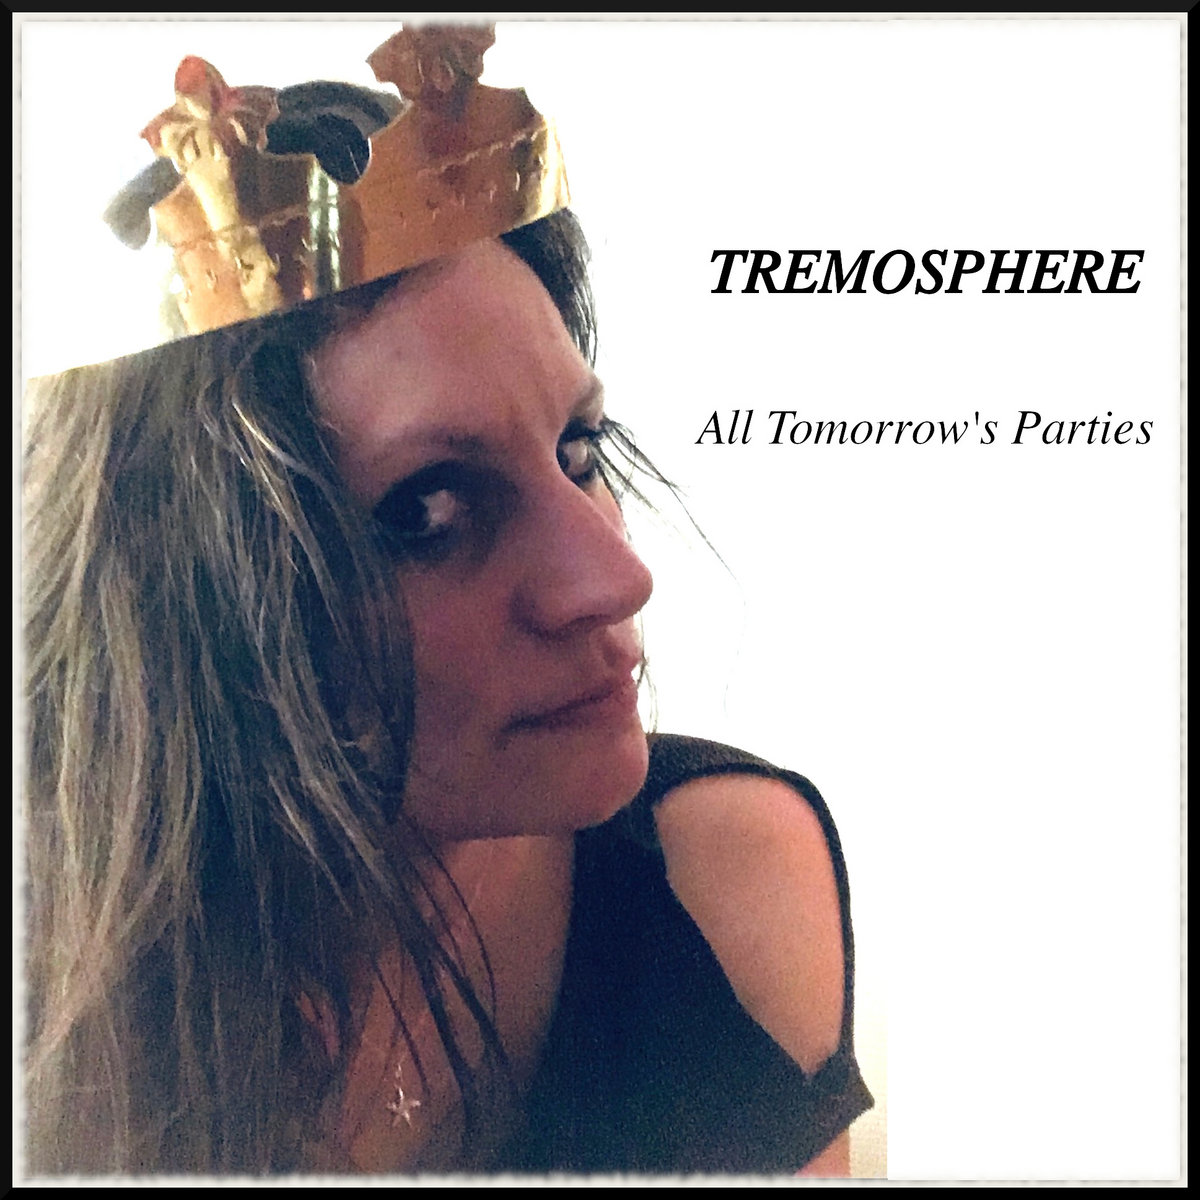 Tremosphere - All Tomorrows Parties